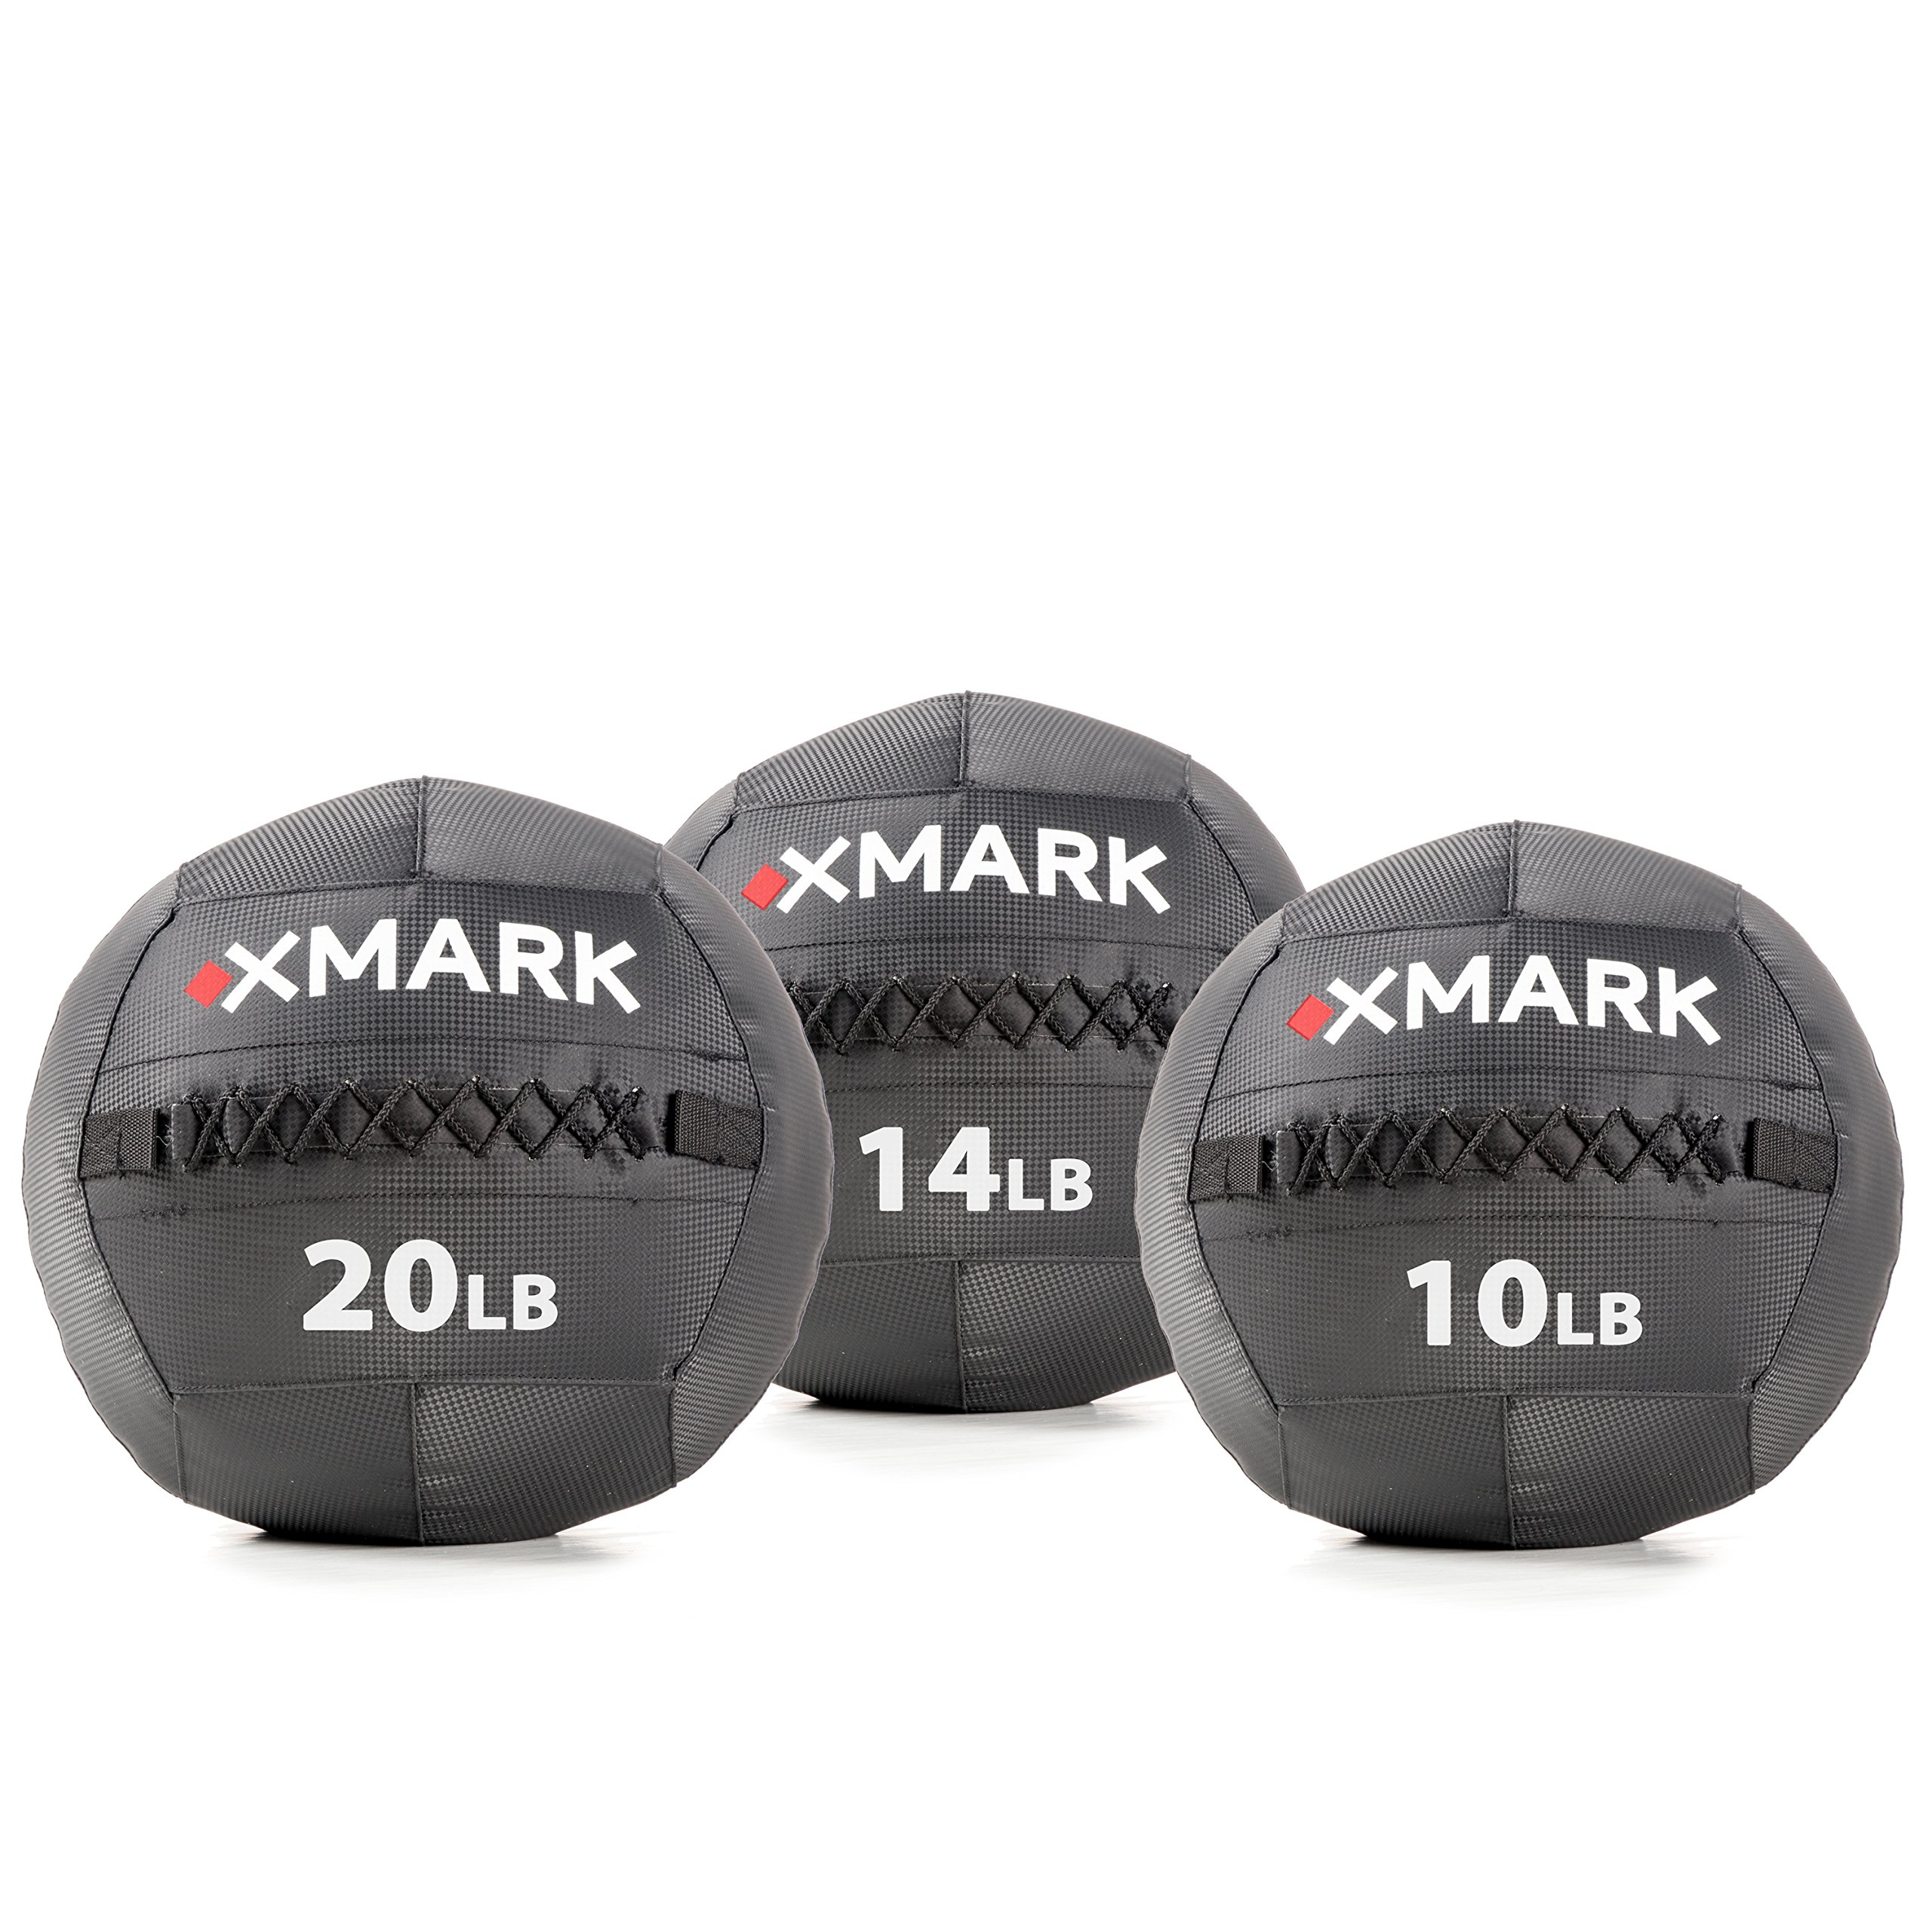 XMark Wall Ball/Medicine Ball, Ideal for Strength Training and Conditioning, Triple Stitched for Reinforcement, 10 lb, 14 lb, and 20 lb. Set of Exercise Balls